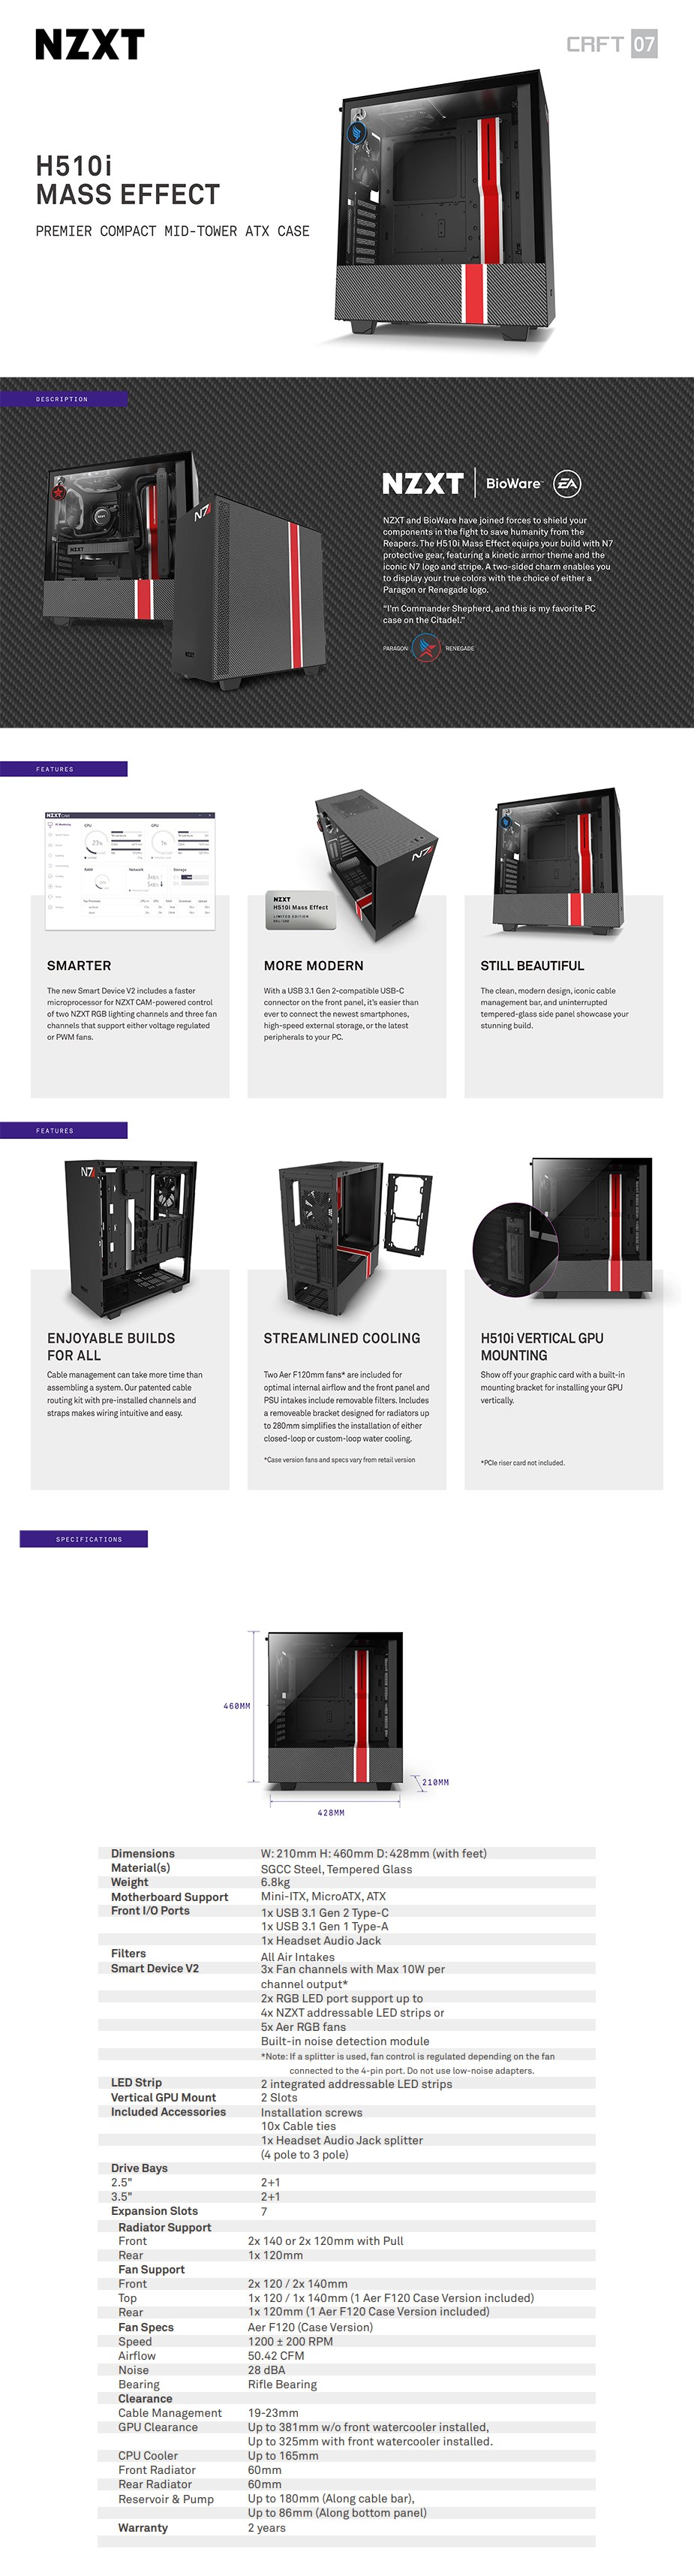 NZXT H510i Smart Tempered Glass Mid-Tower ATX Case - Mass Effect Edition - Overview 1